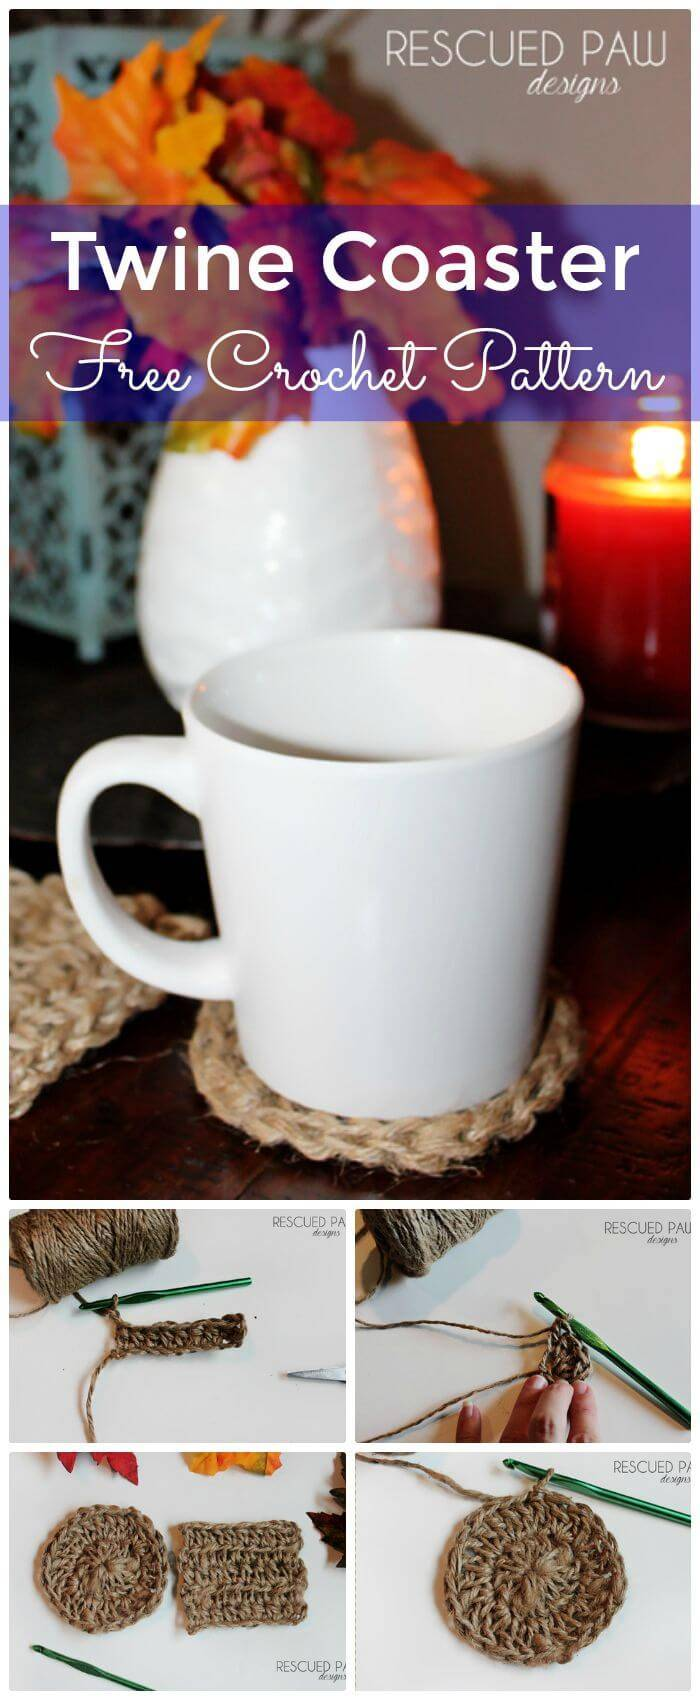 DIY Twine Coaster Crochet Pattern-Free Crochet Pattern, Simple crochet coaster free patterns!